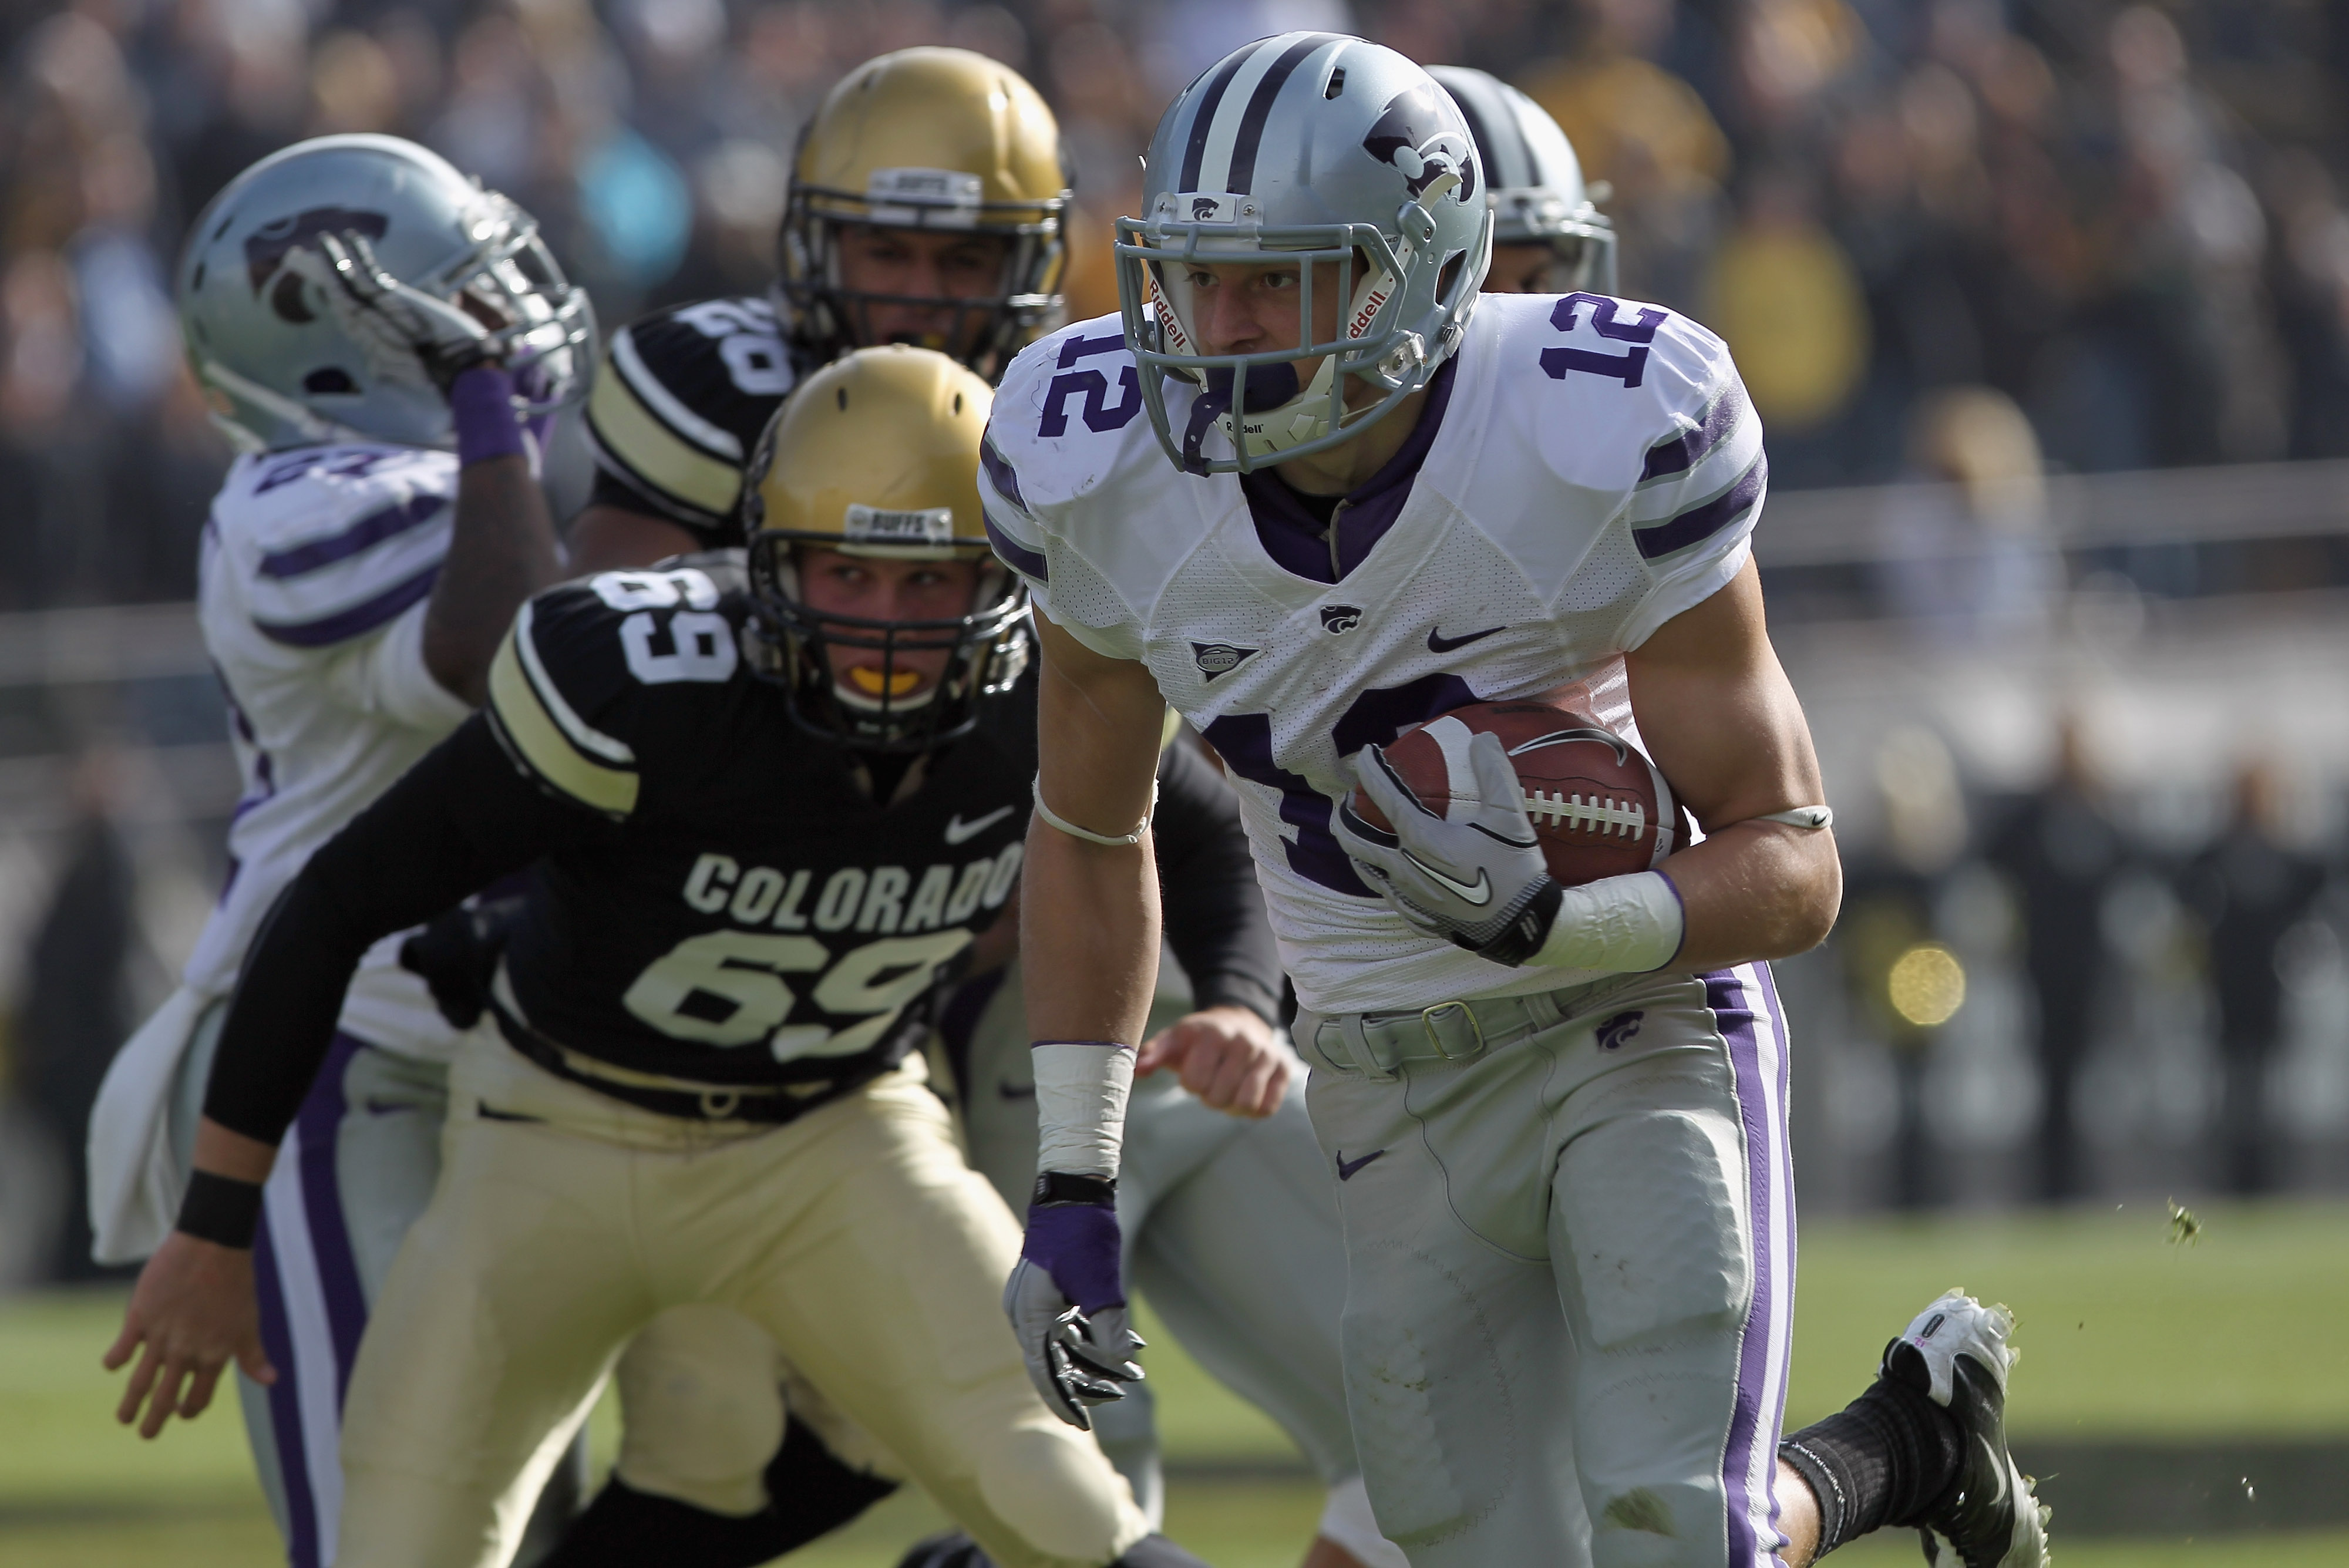 BOULDER, CO - NOVEMBER 20:  Ty Zimmerman #12 of the Kansas State Wildcats returns a punt to the one yard line against the Colorado Buffaloes in the first quarter at Folsom Field on November 20, 2010 in Boulder, Colorado. Colorado defeated Kansas State 44-